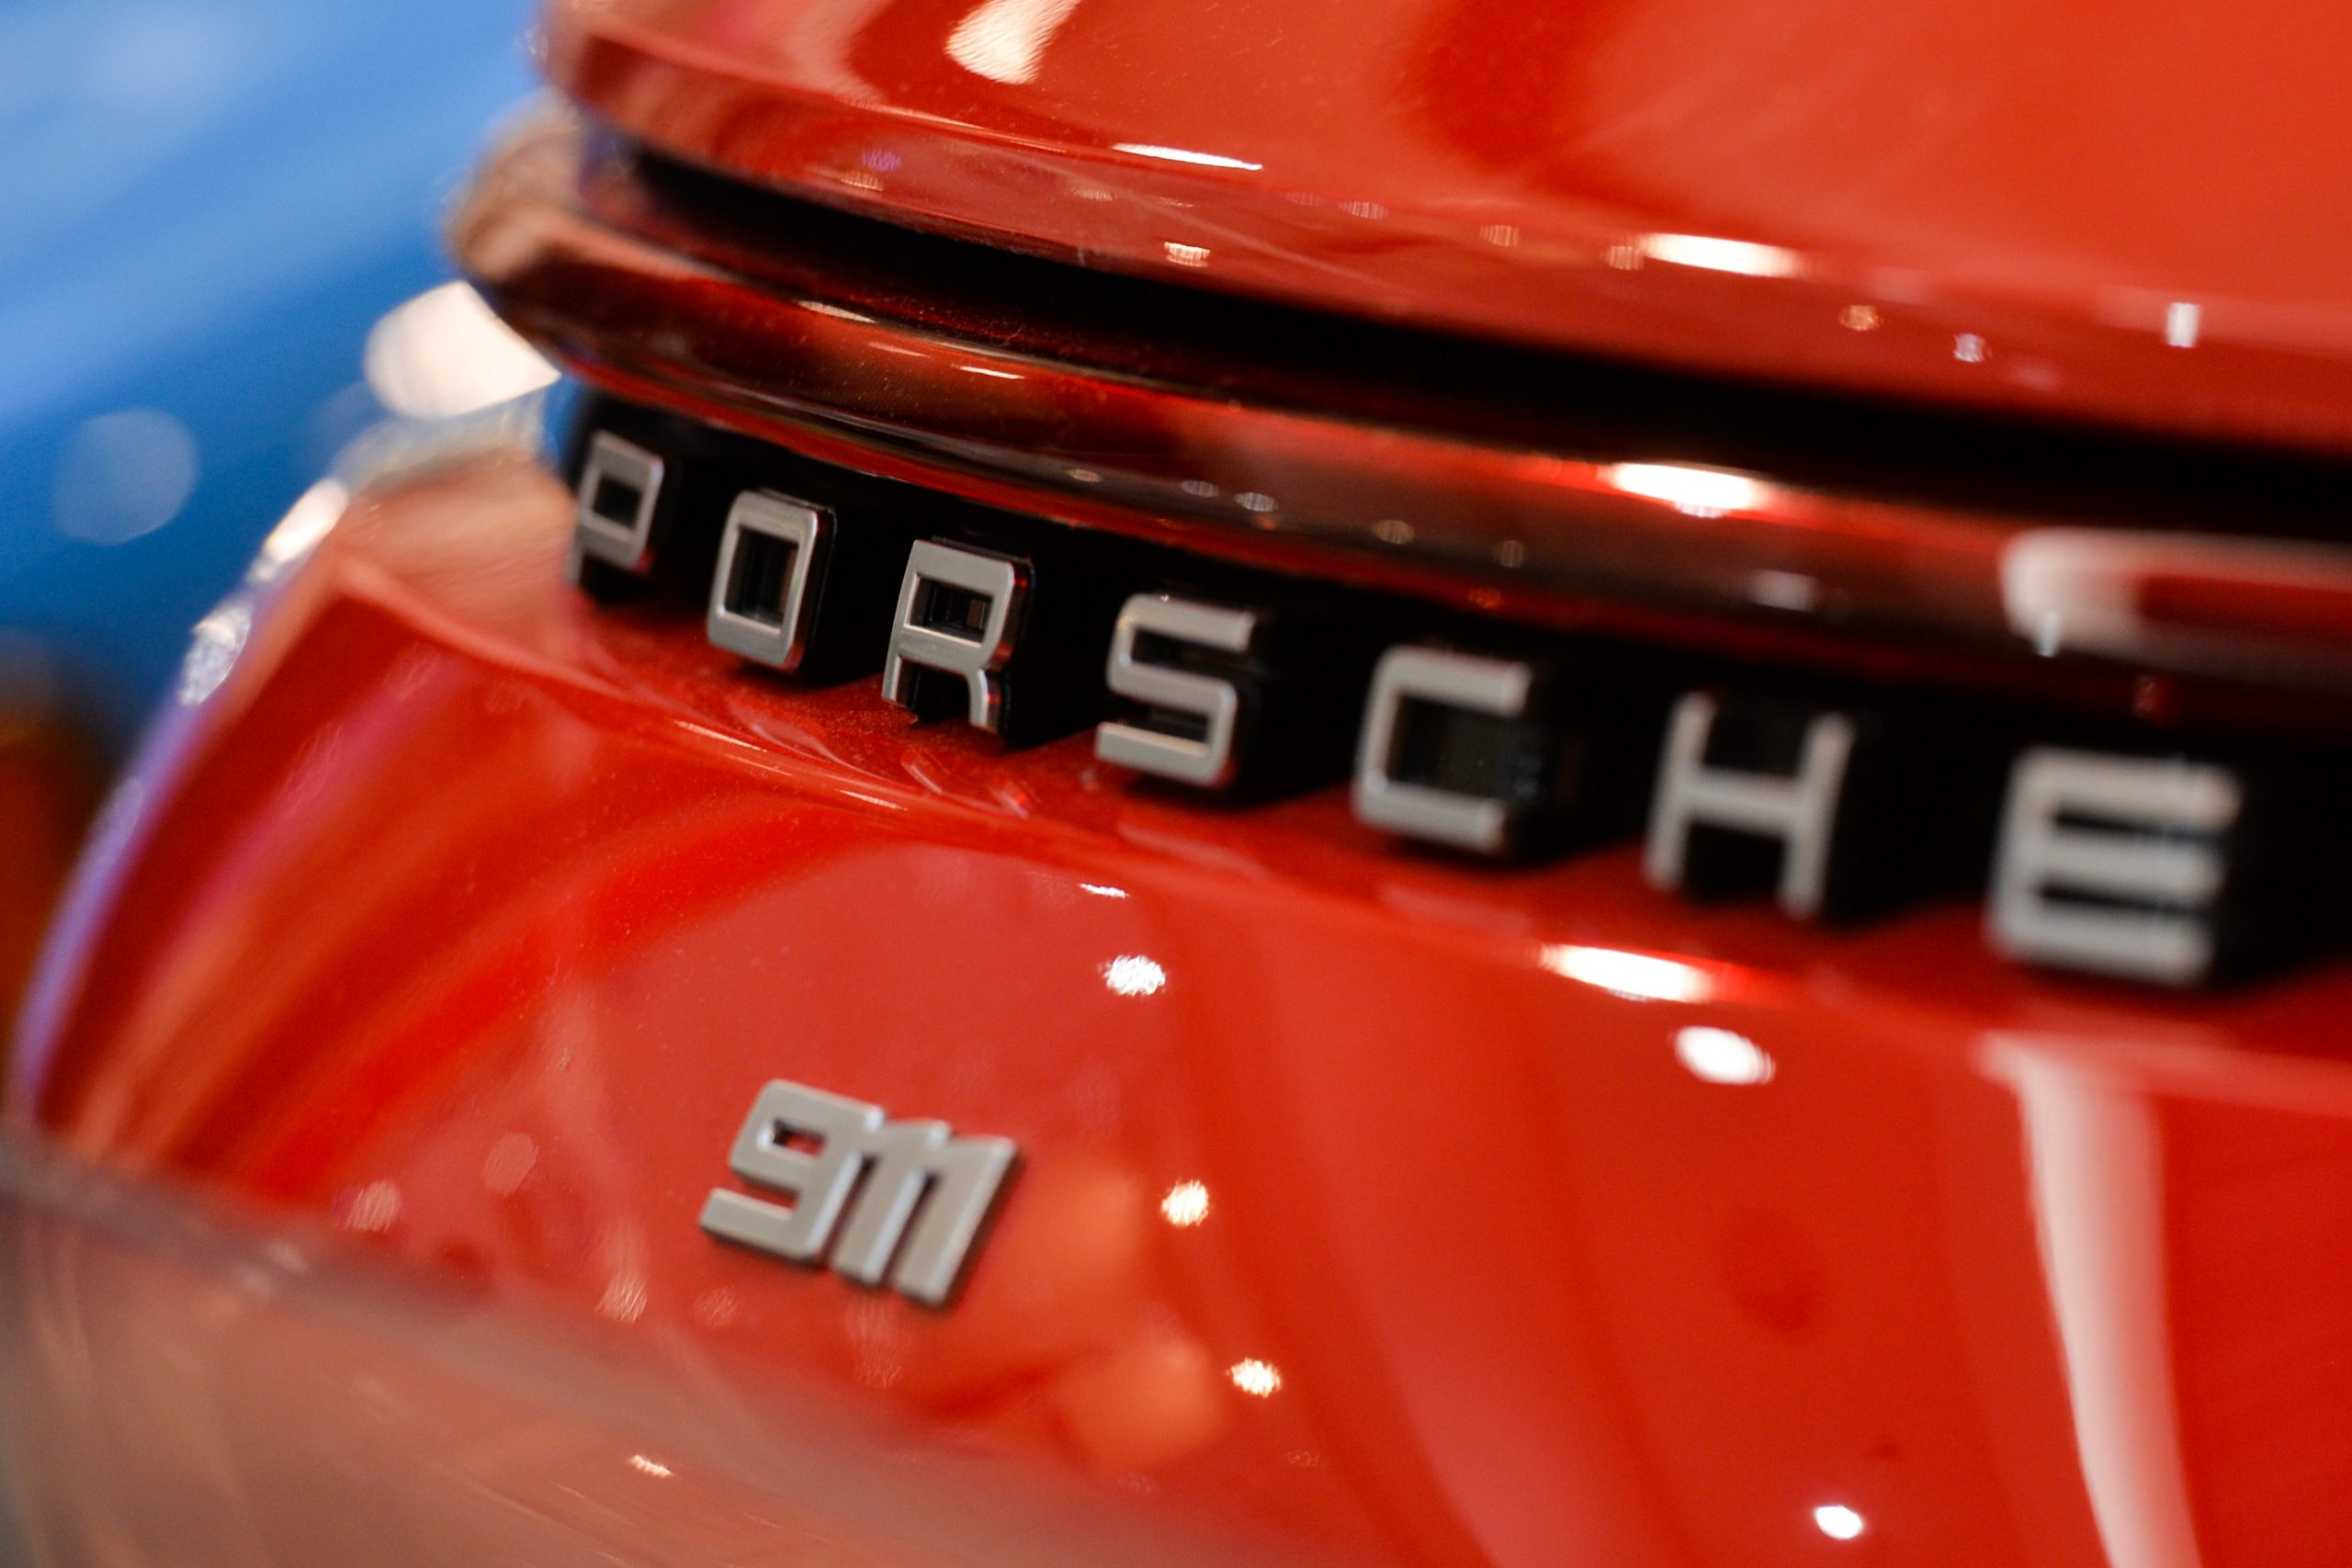 The rear 911 badge on a red Porsche